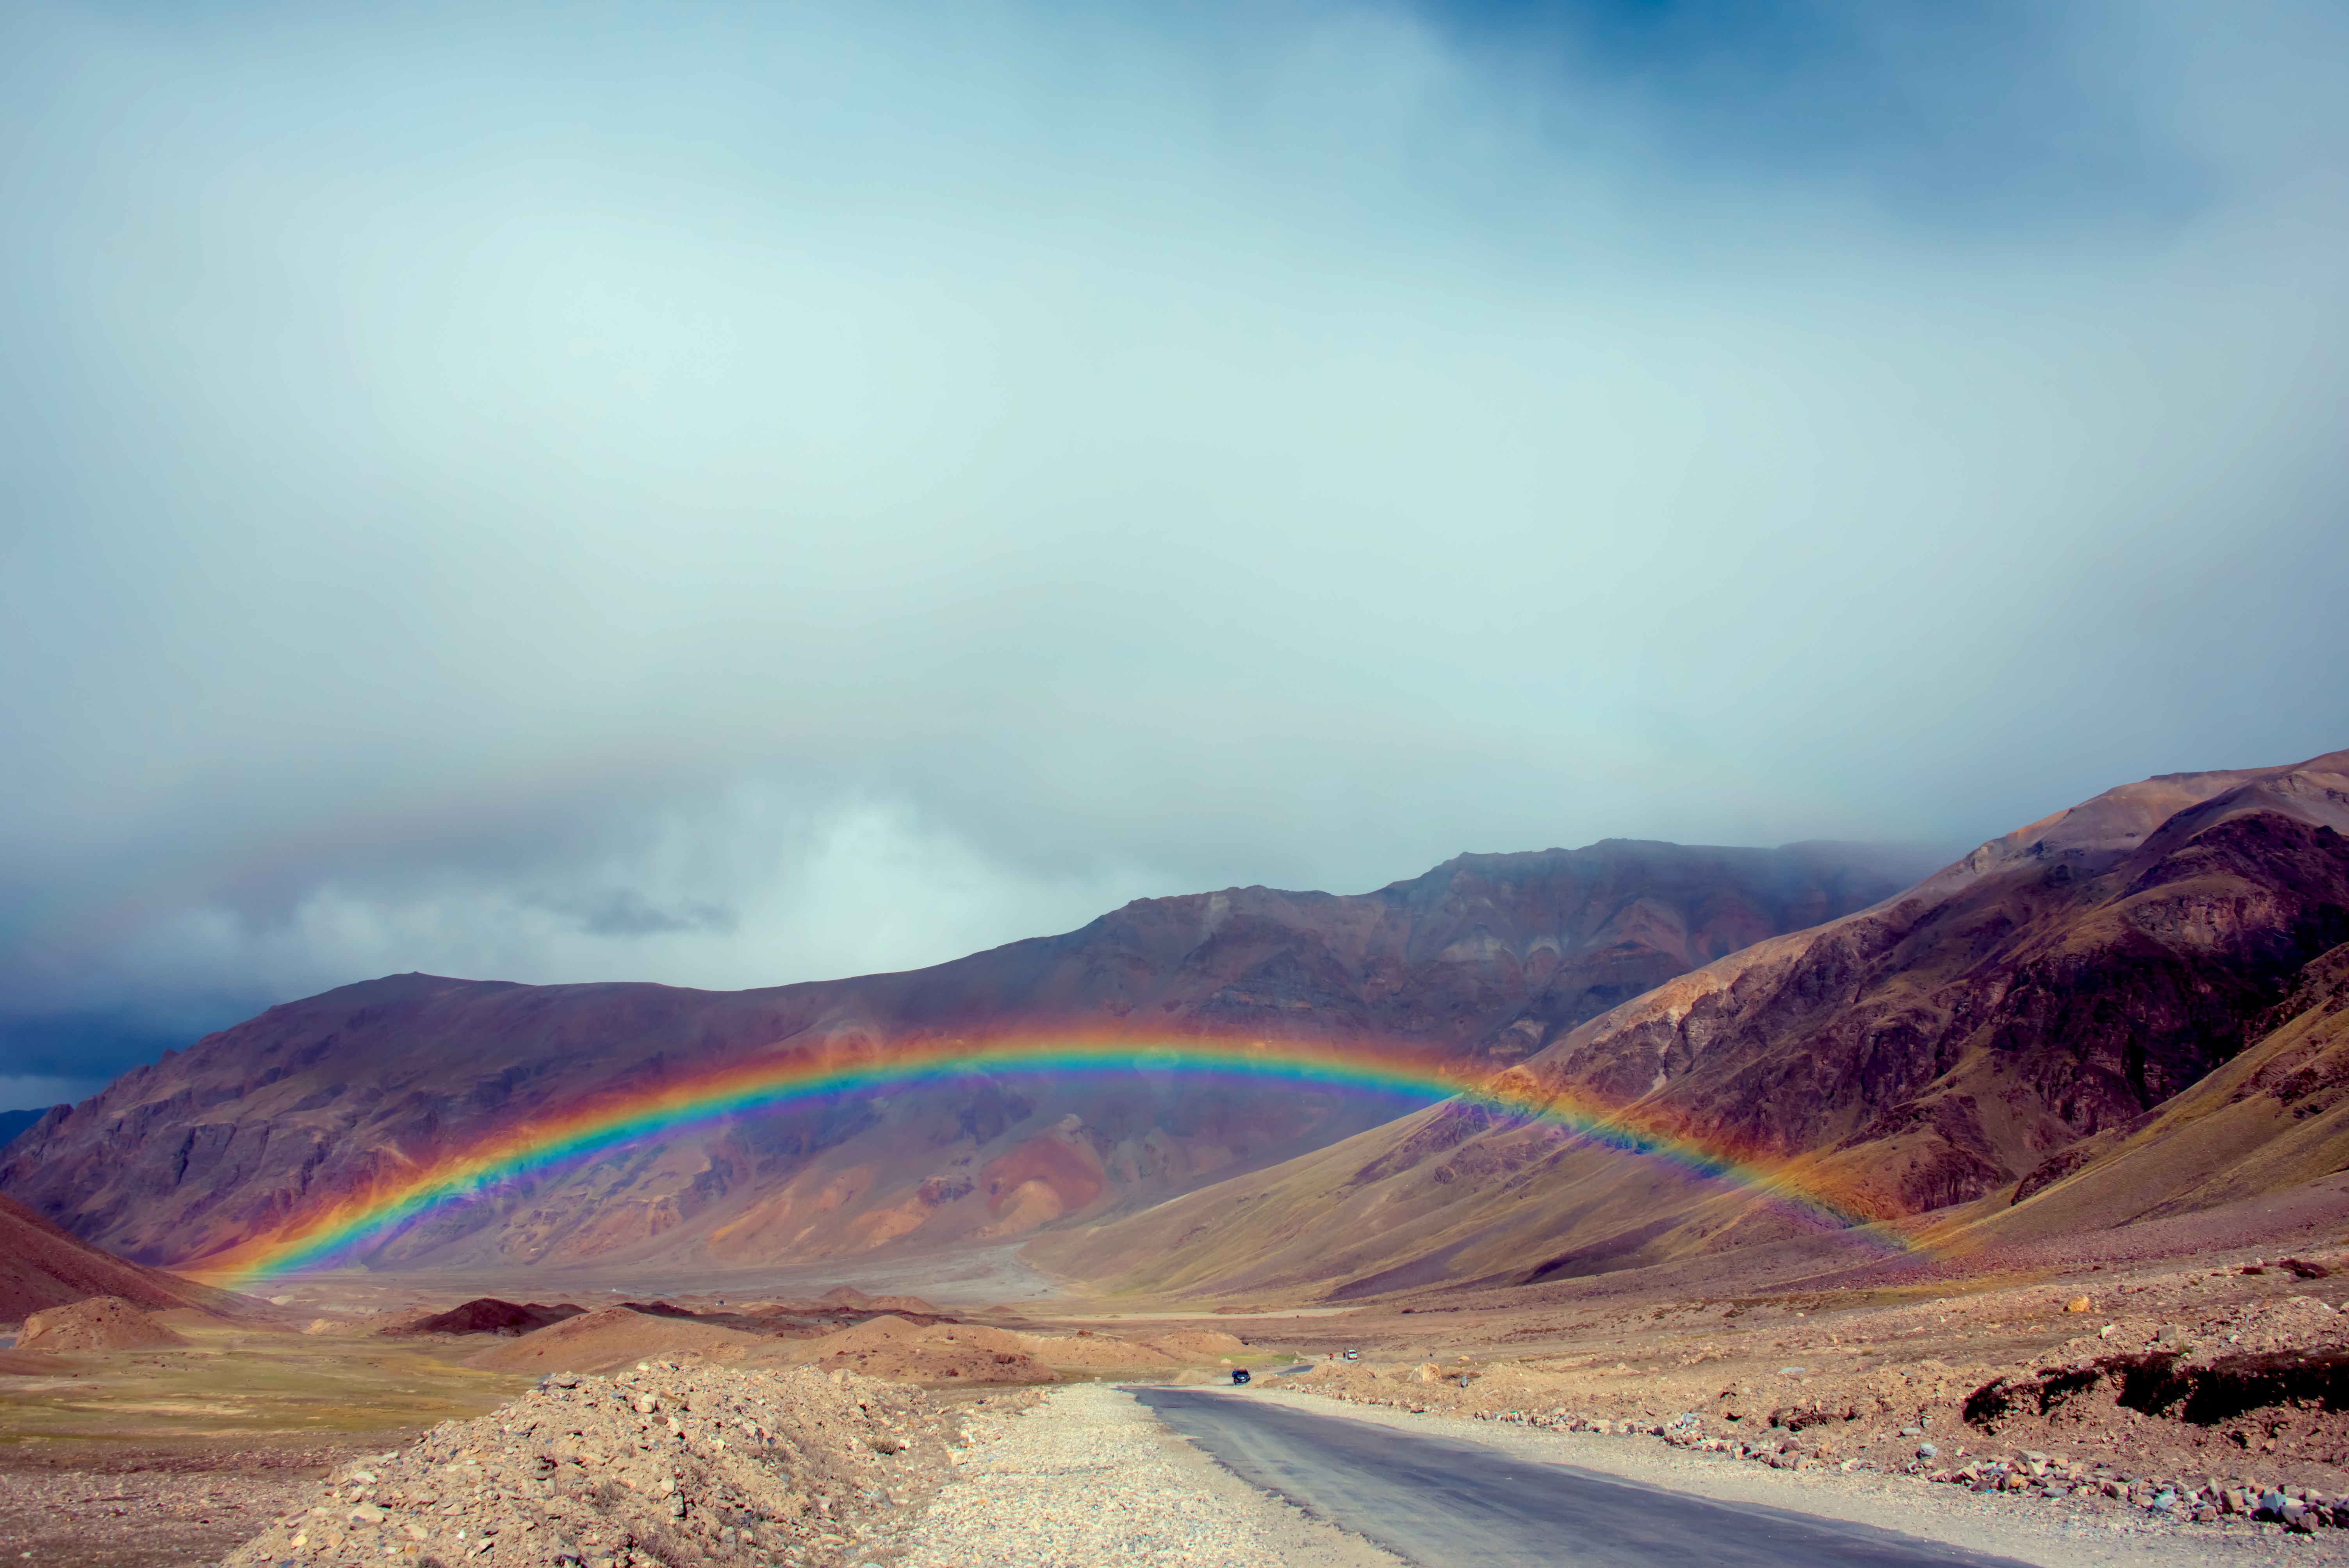 Rainbow Entrance To Spiritual Himalayas